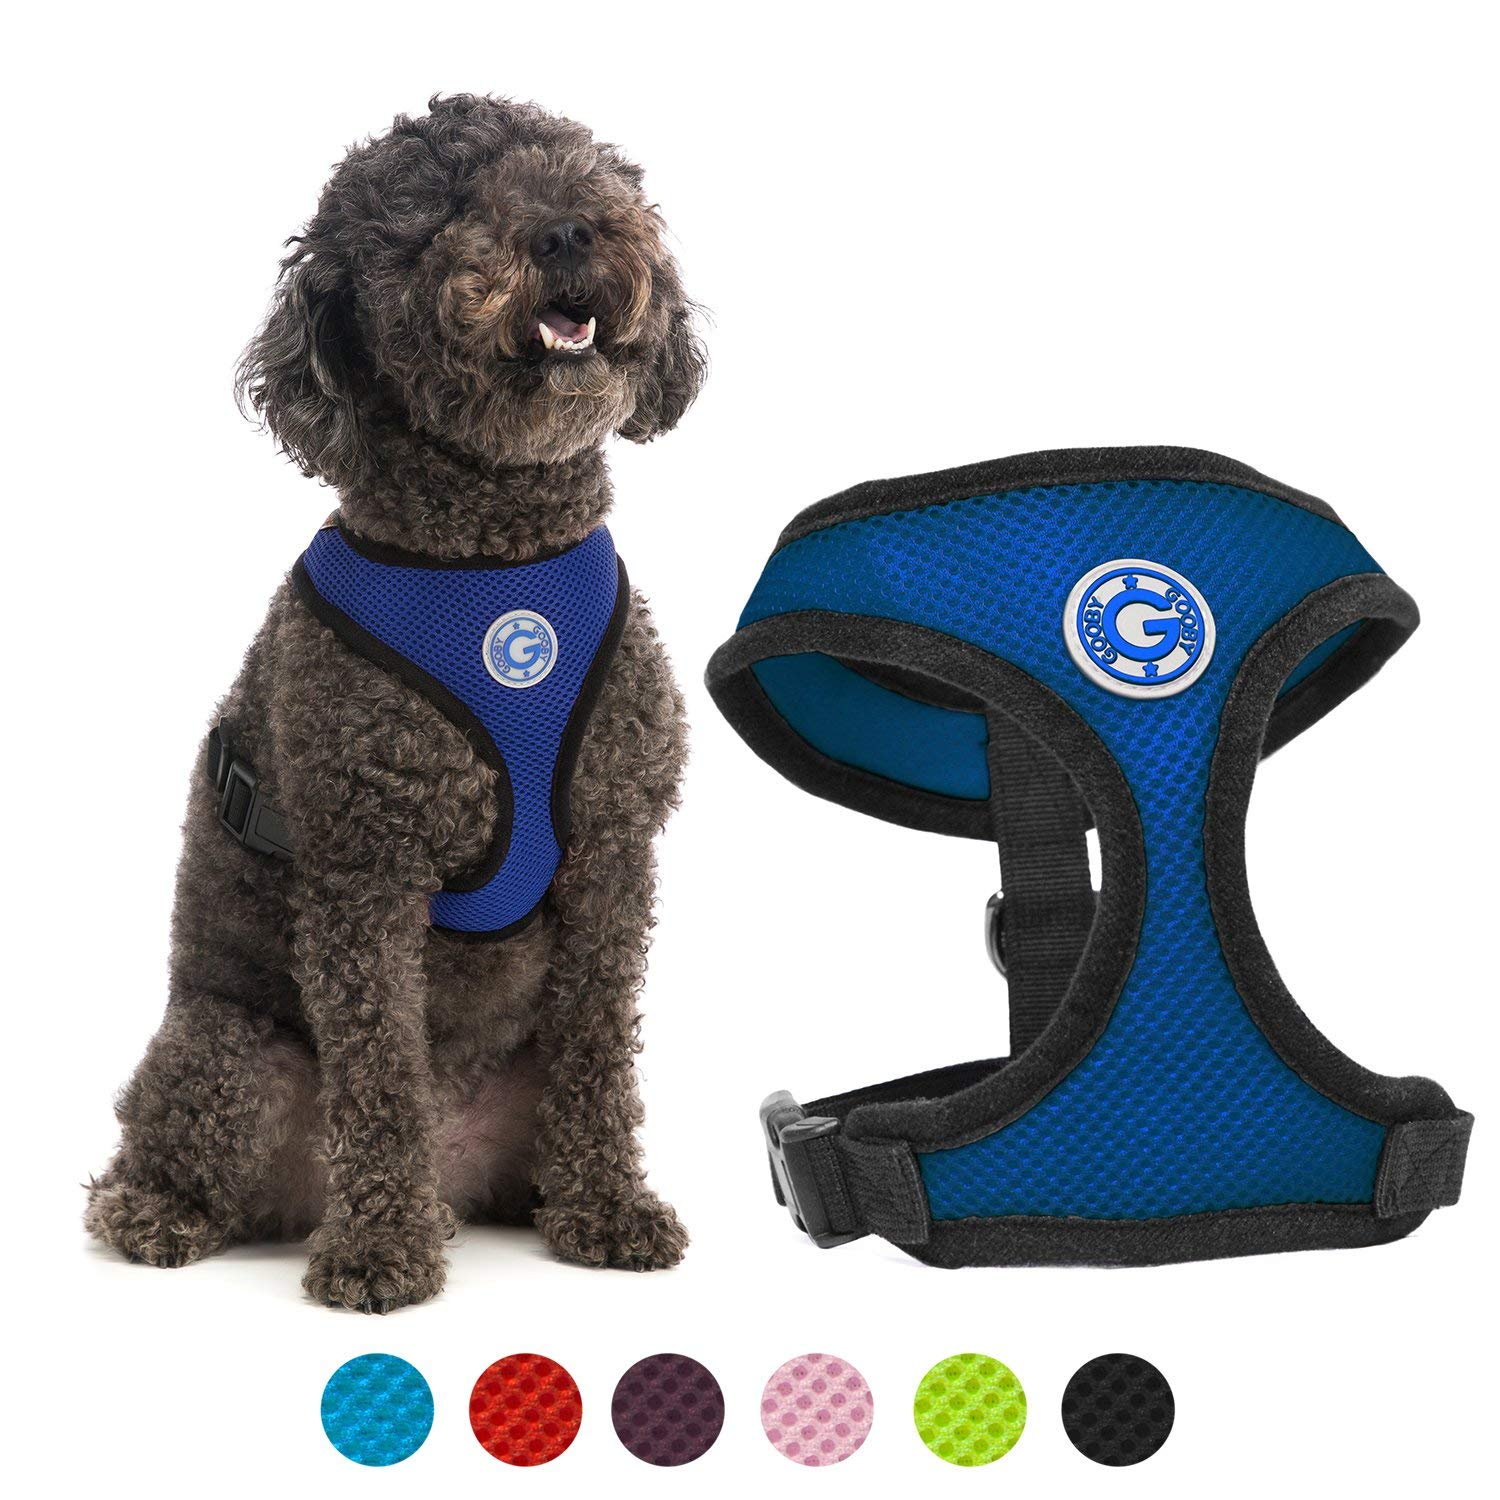 Gooby Dog Harness - Soft Mesh Head-in Small Dog Harness with Breathable Mesh - Perfect on The Go Mesh Harness for Small Dogs or Cat Harness for Indoor and Outdoor Use